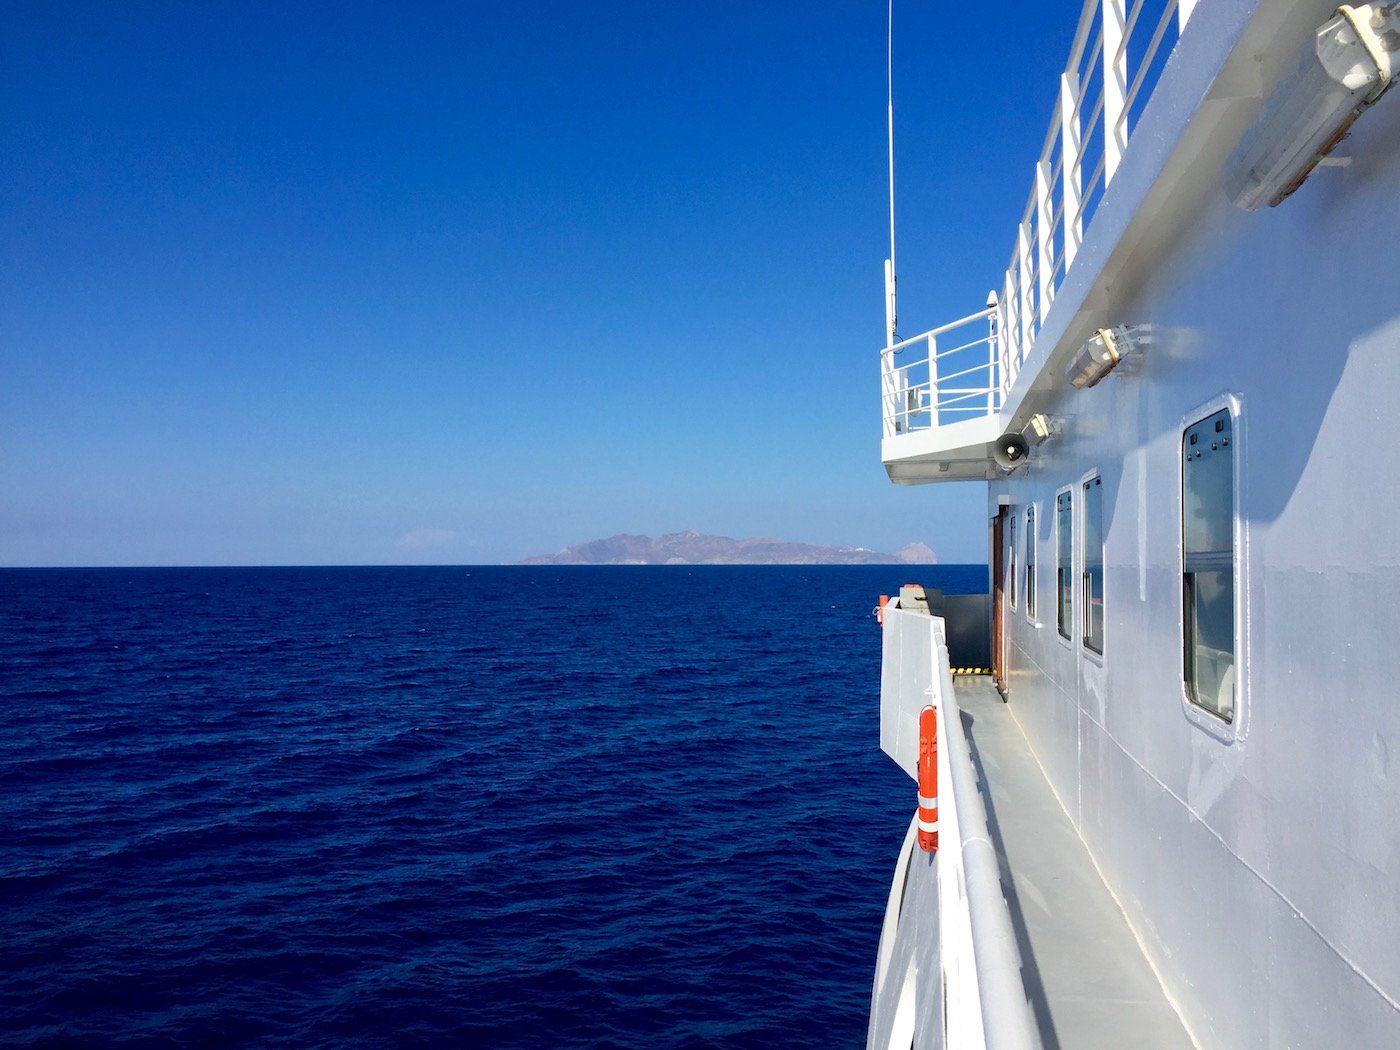 Small-Cyclades-Boat.